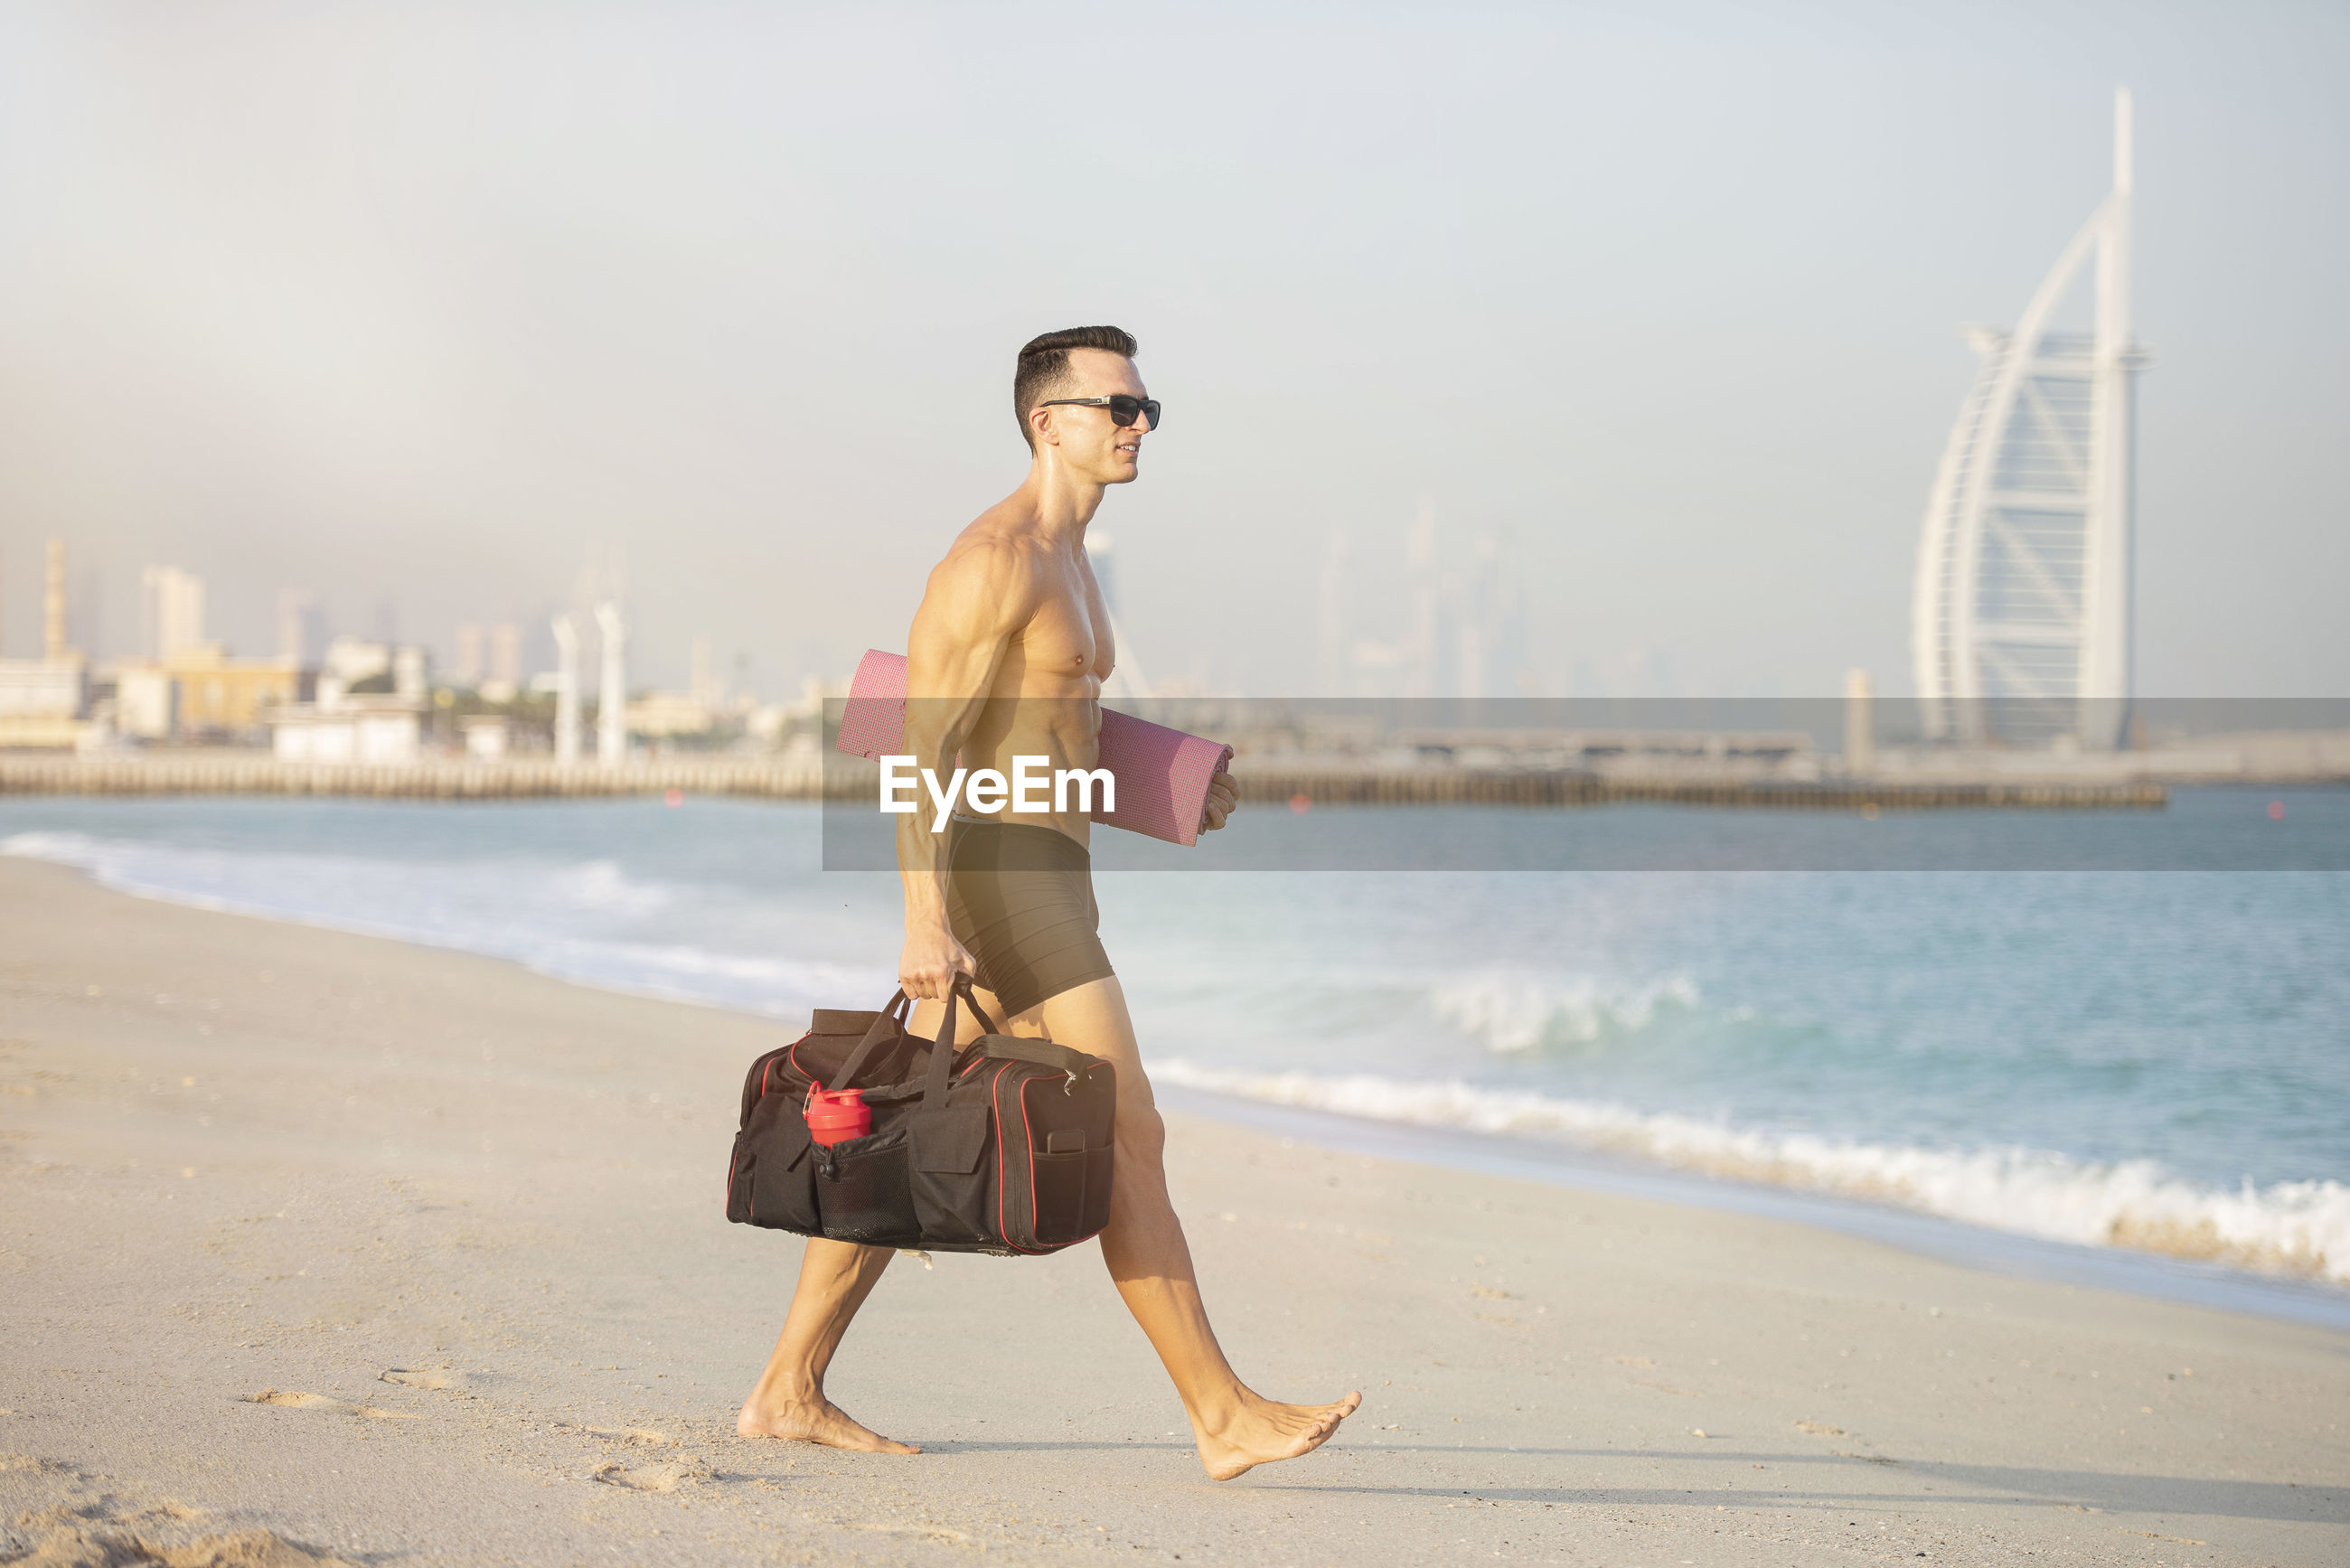 Full length of shirtless man walking while holding bag at beach